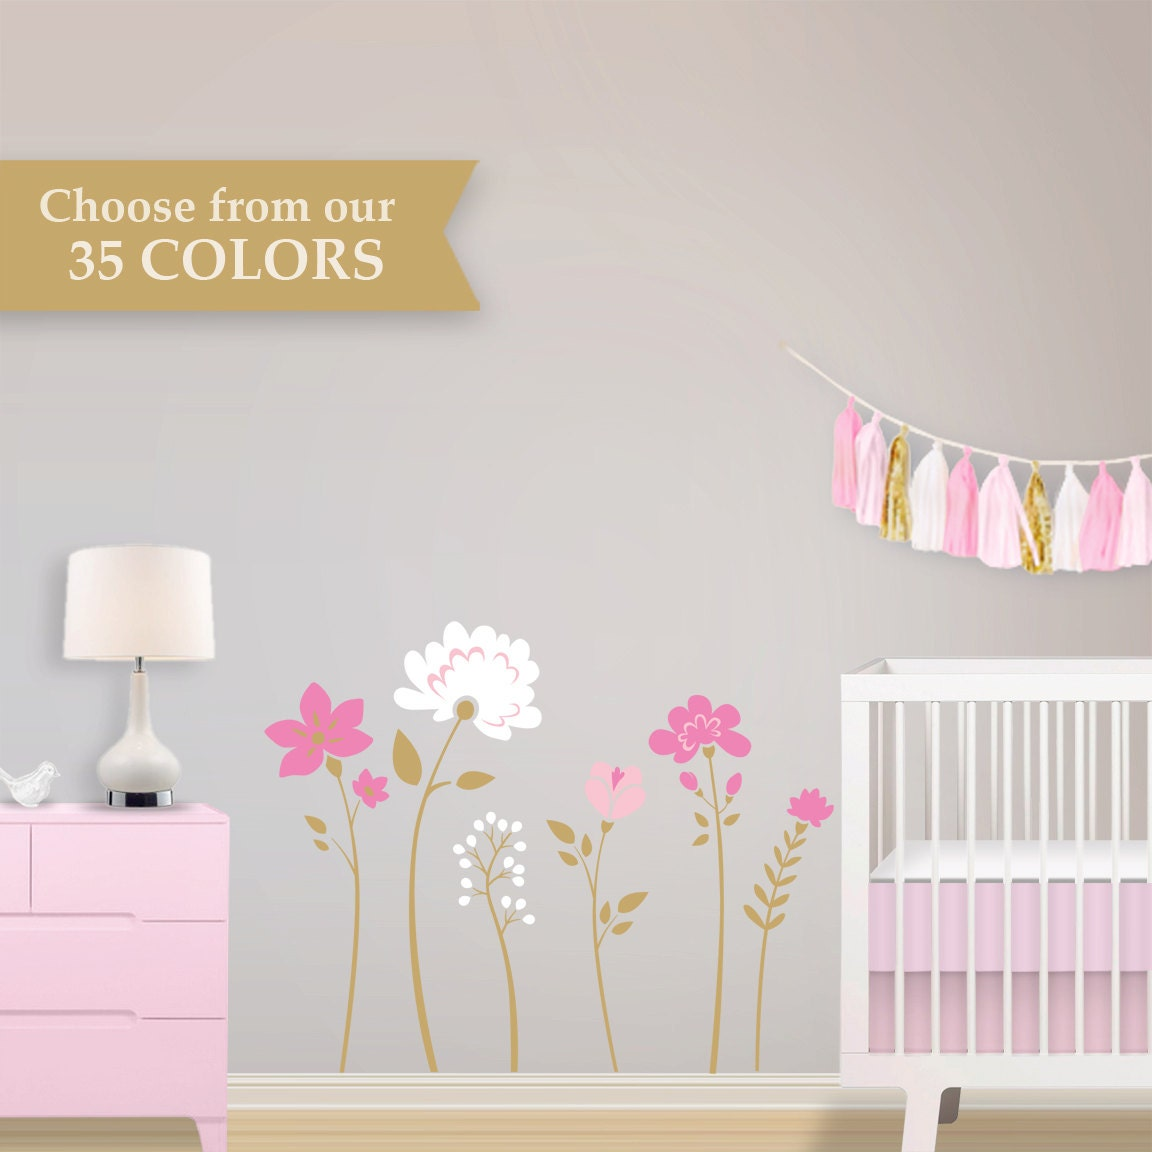 Children Wall Decal Flower Wall Decals Pink Gold by Lulukuku